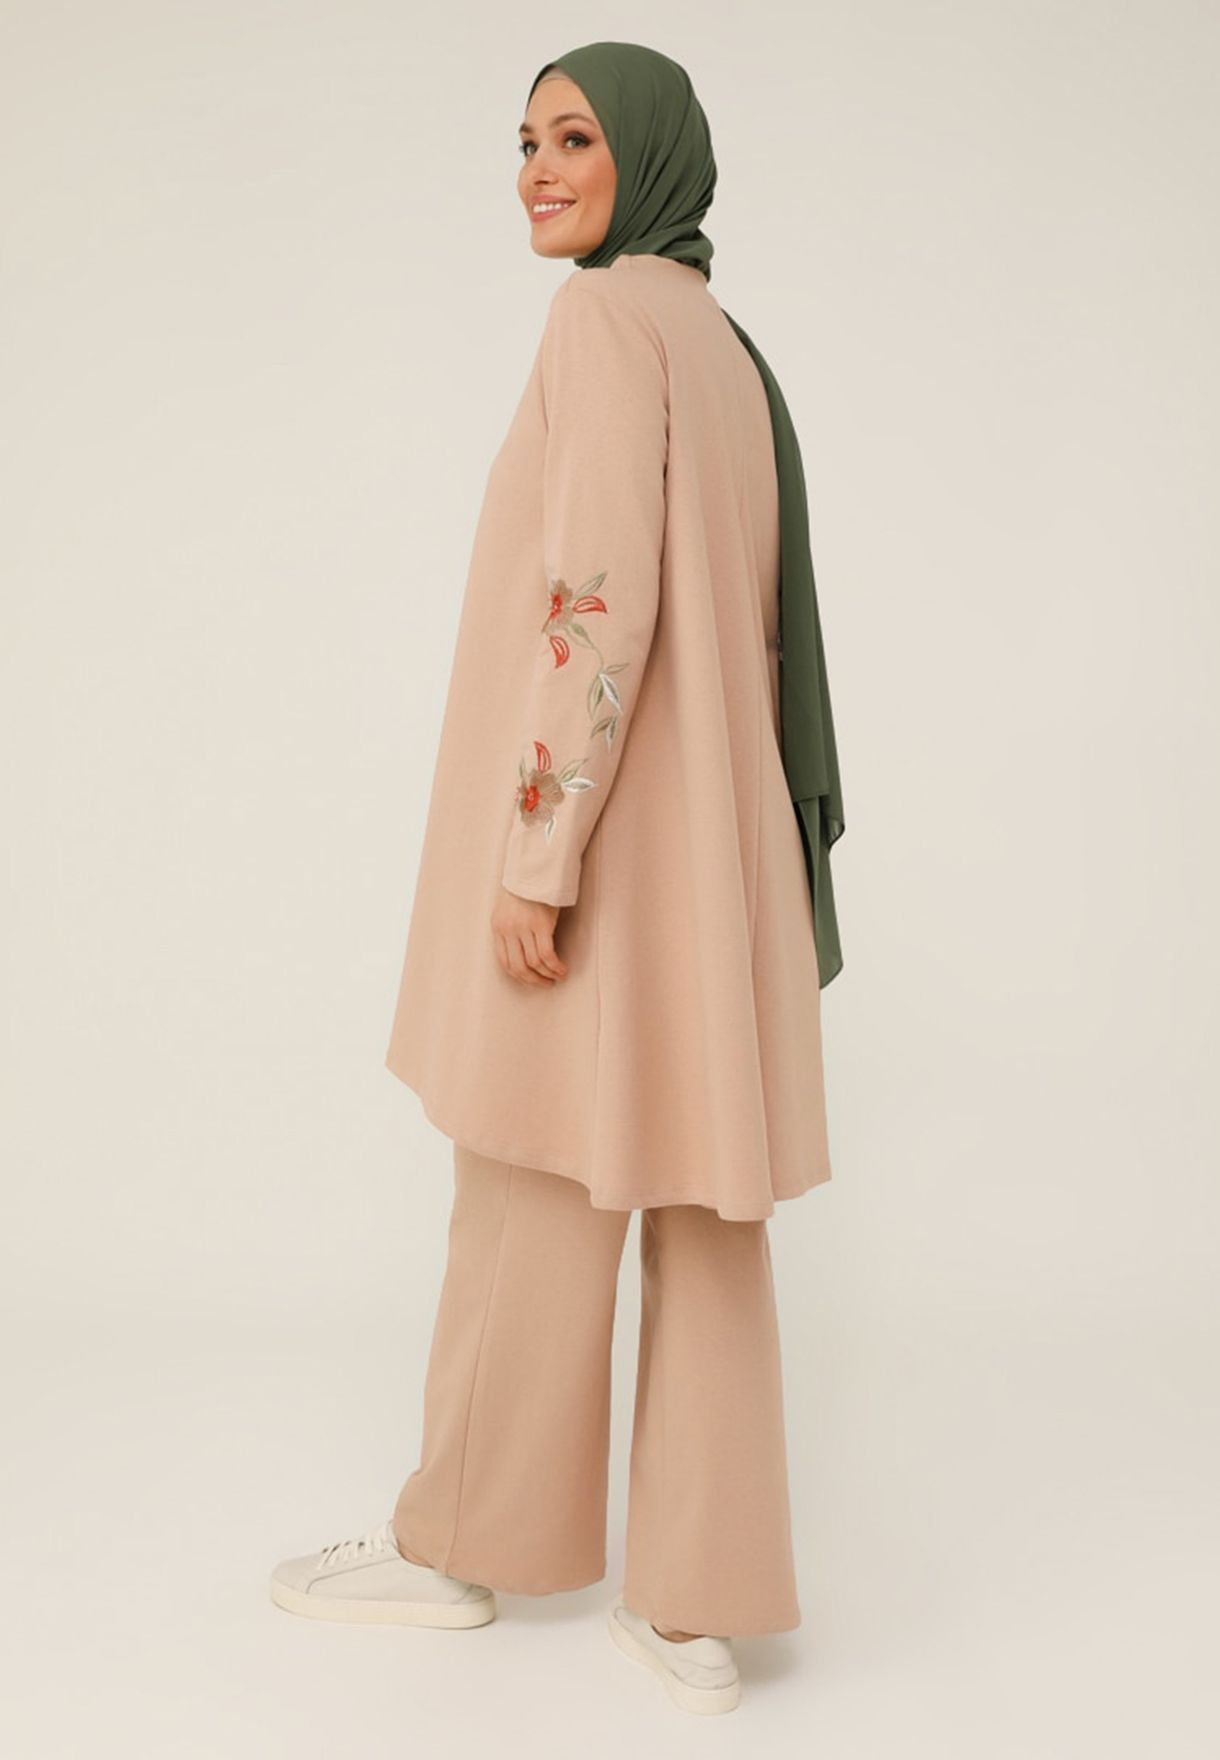 Embroidered Top & Pants Set